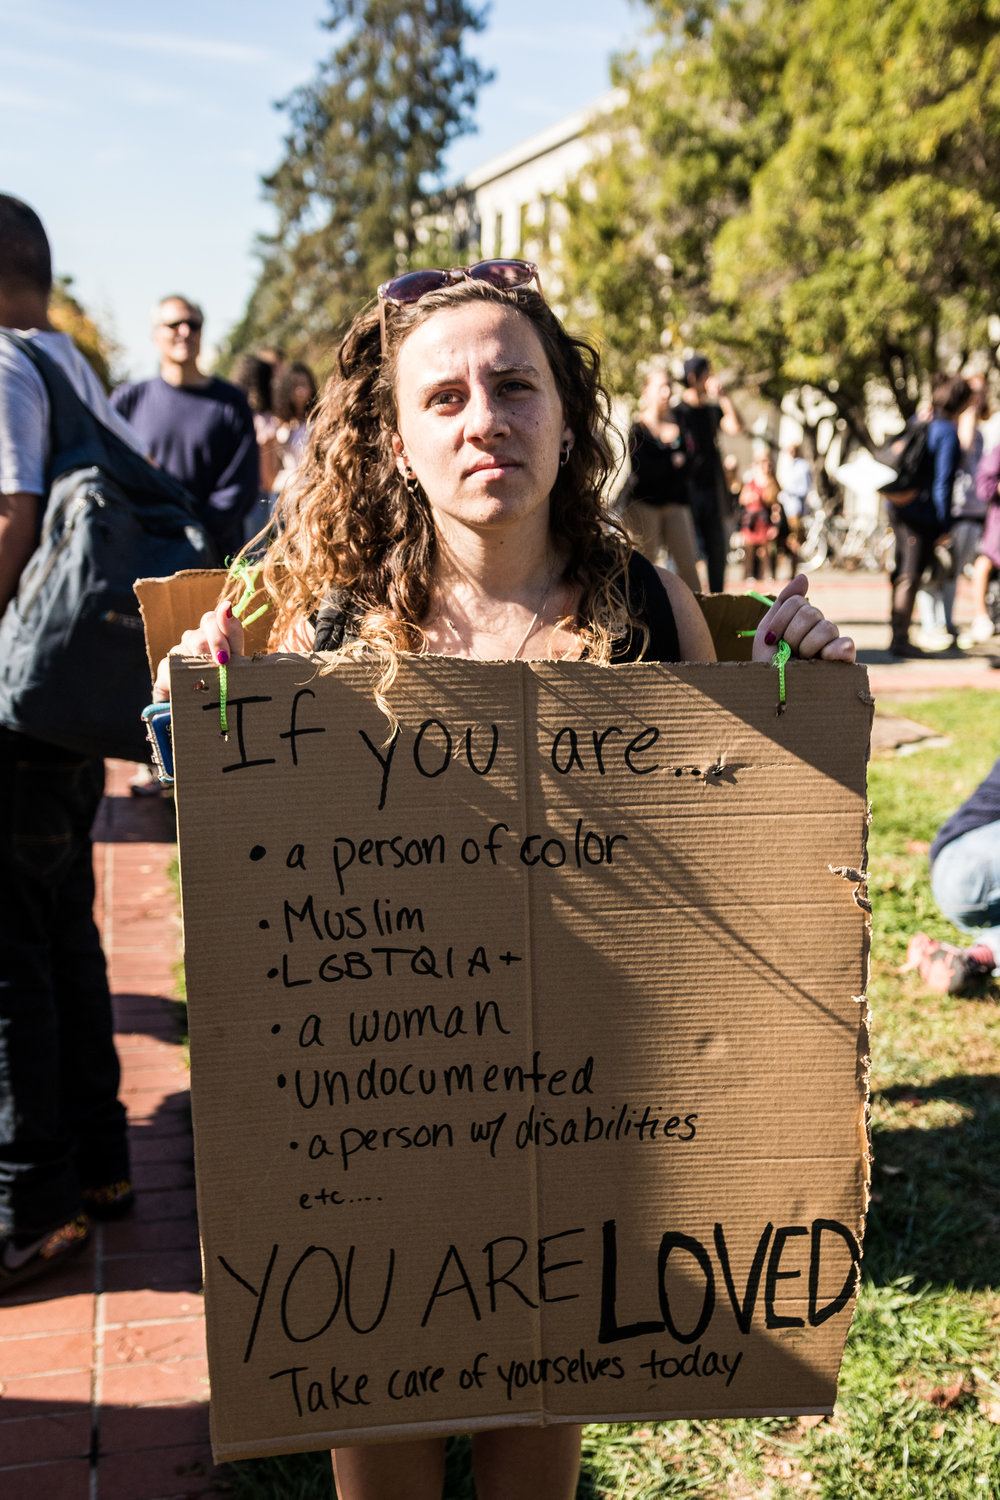 Berkeley-Nov9Rally33-LoveSignPortrait-FullRes.jpg